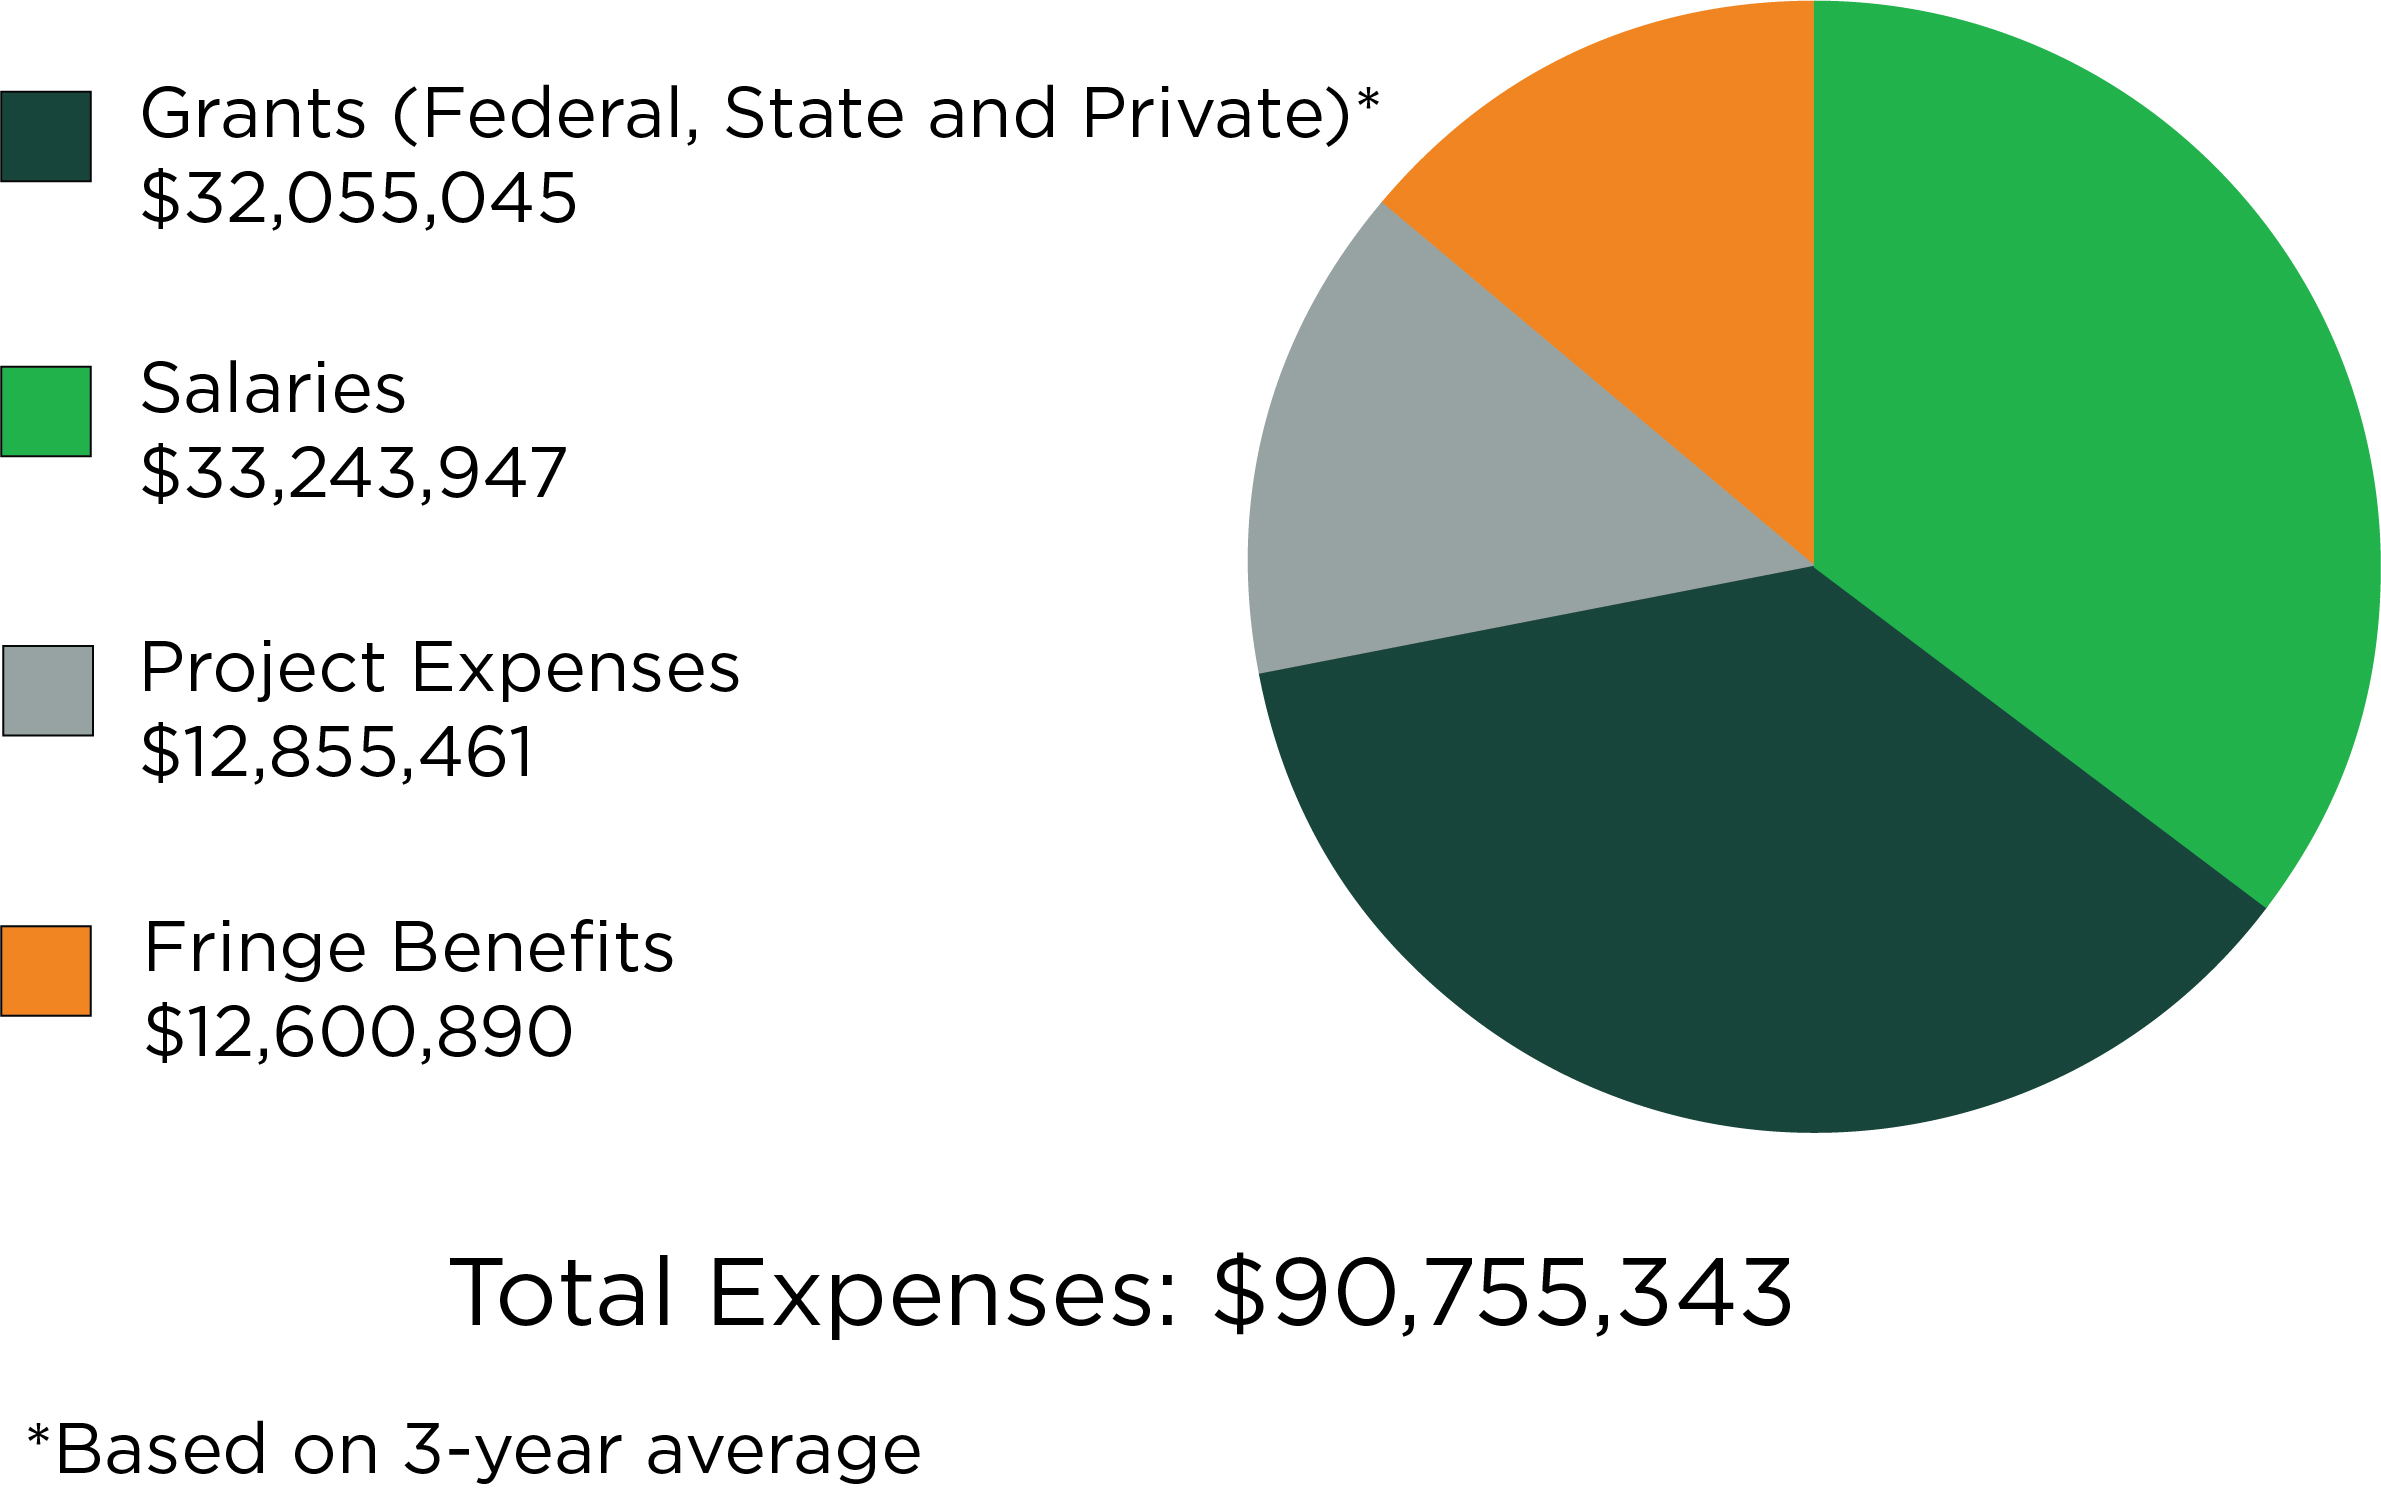 Graph of MSU Extension Expenses in 2019-20, which total $90,755,343.